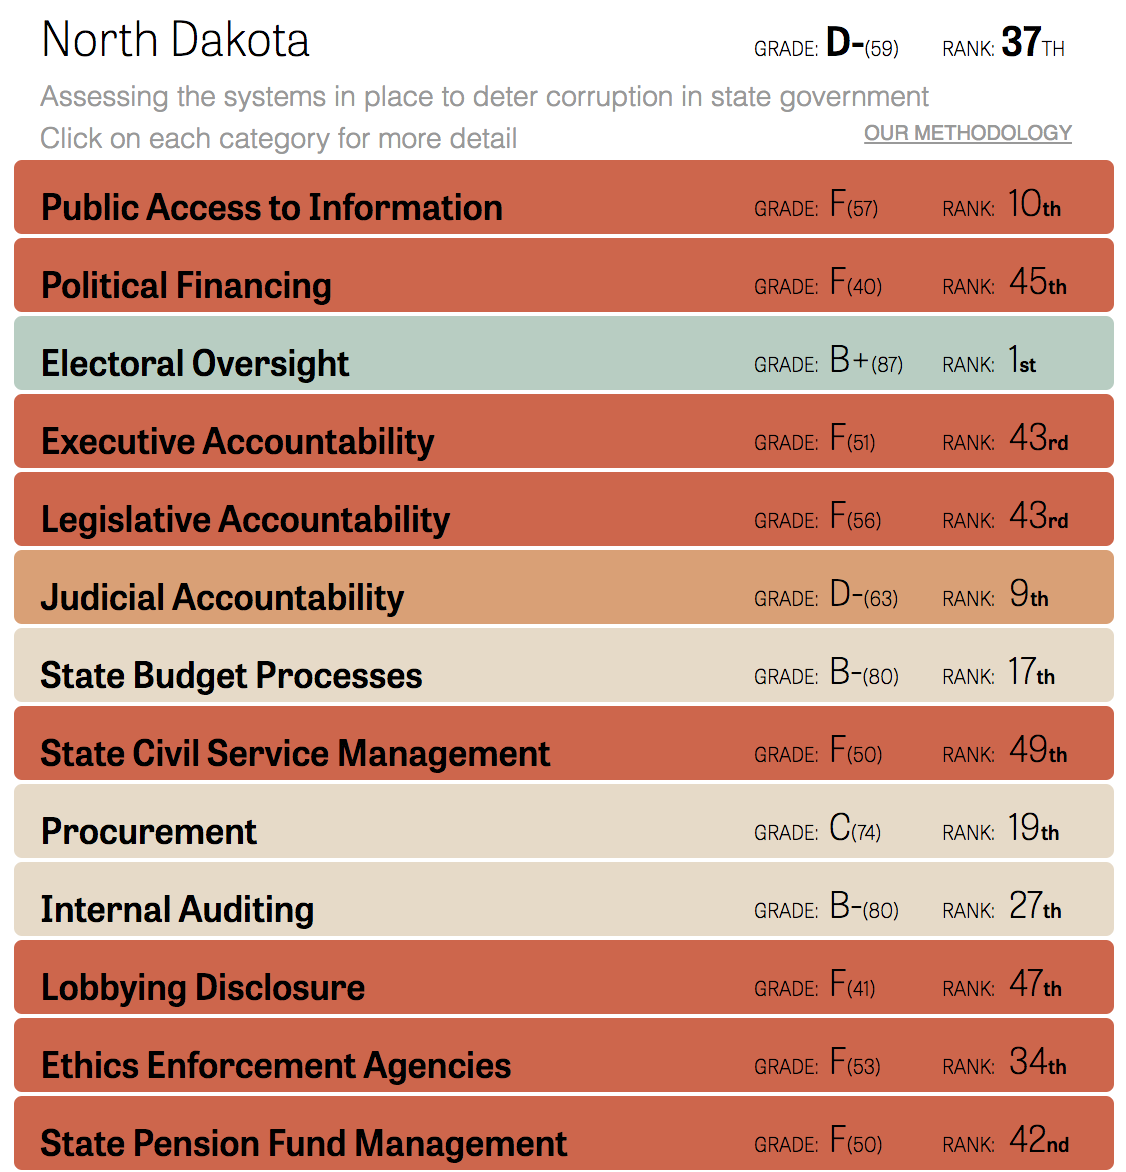 https://www.publicintegrity.org/2015/11/09/18822/how-does-your-state-rank-integrity